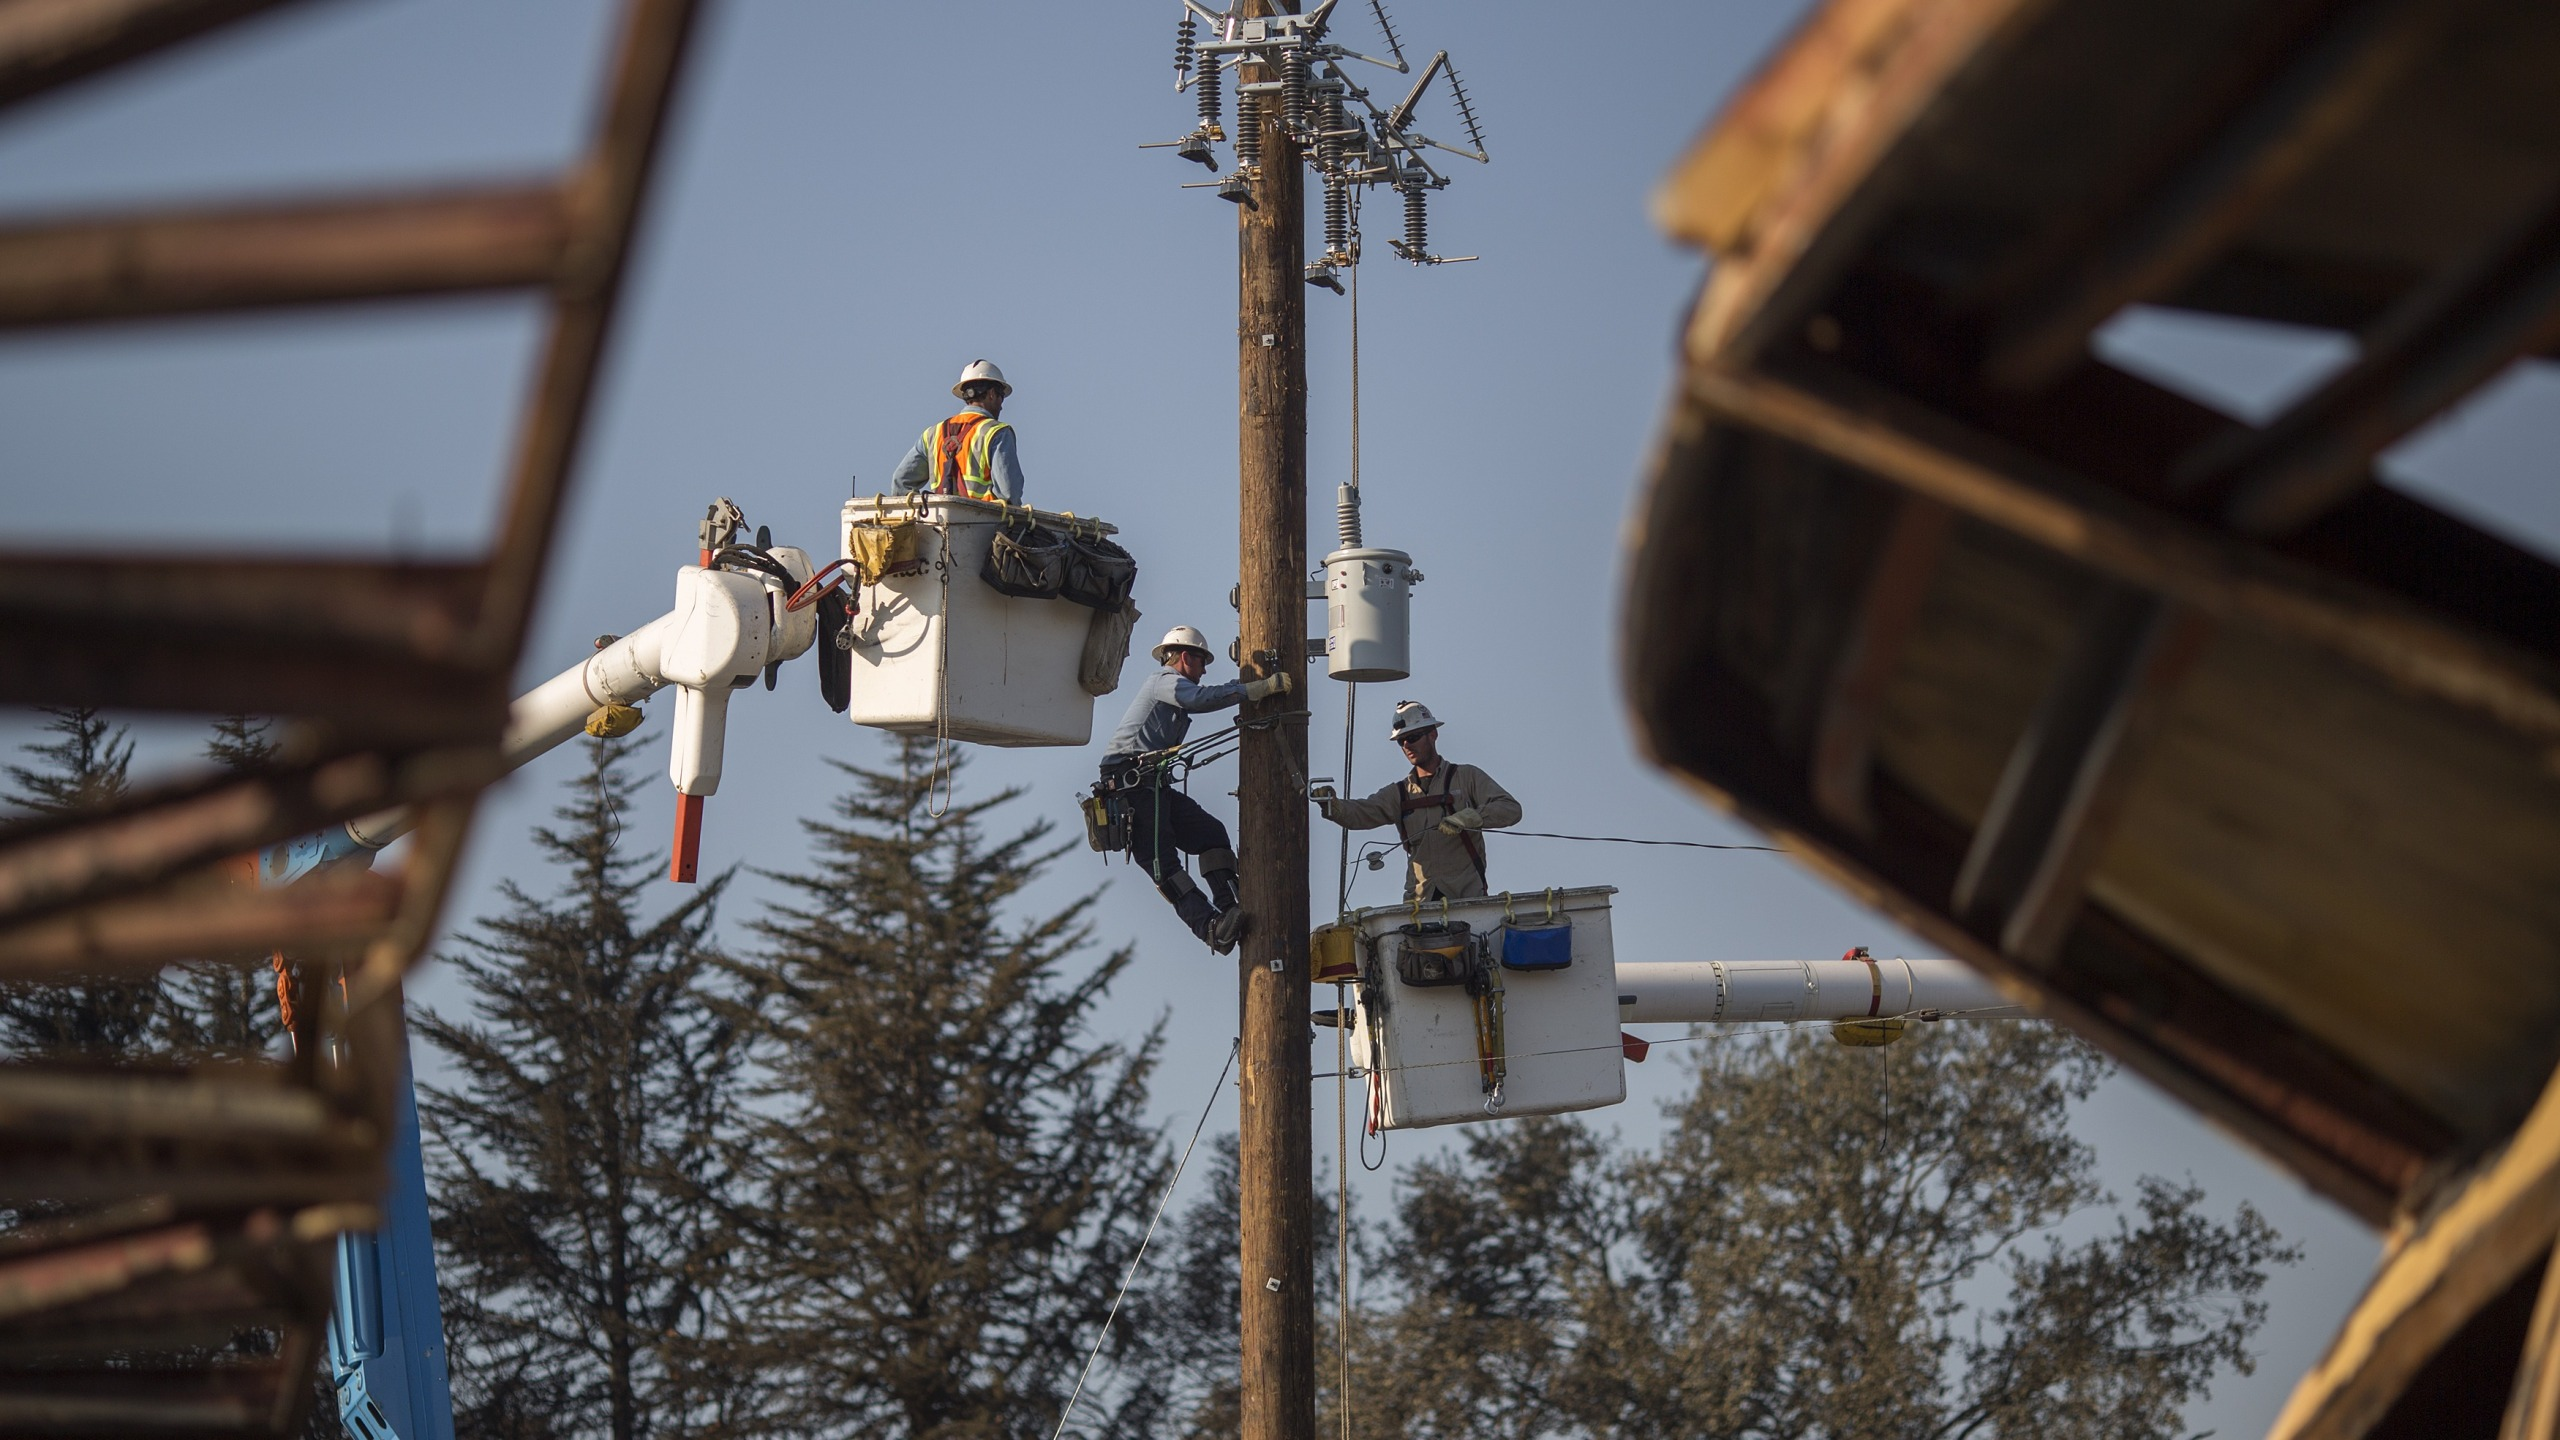 Pacific Gas and Electric Company crews work to restore power near fire-damaged Cardinal Newman High School on Oct. 14, 2017 in Santa Rosa. (Credit: David McNew/Getty Images)